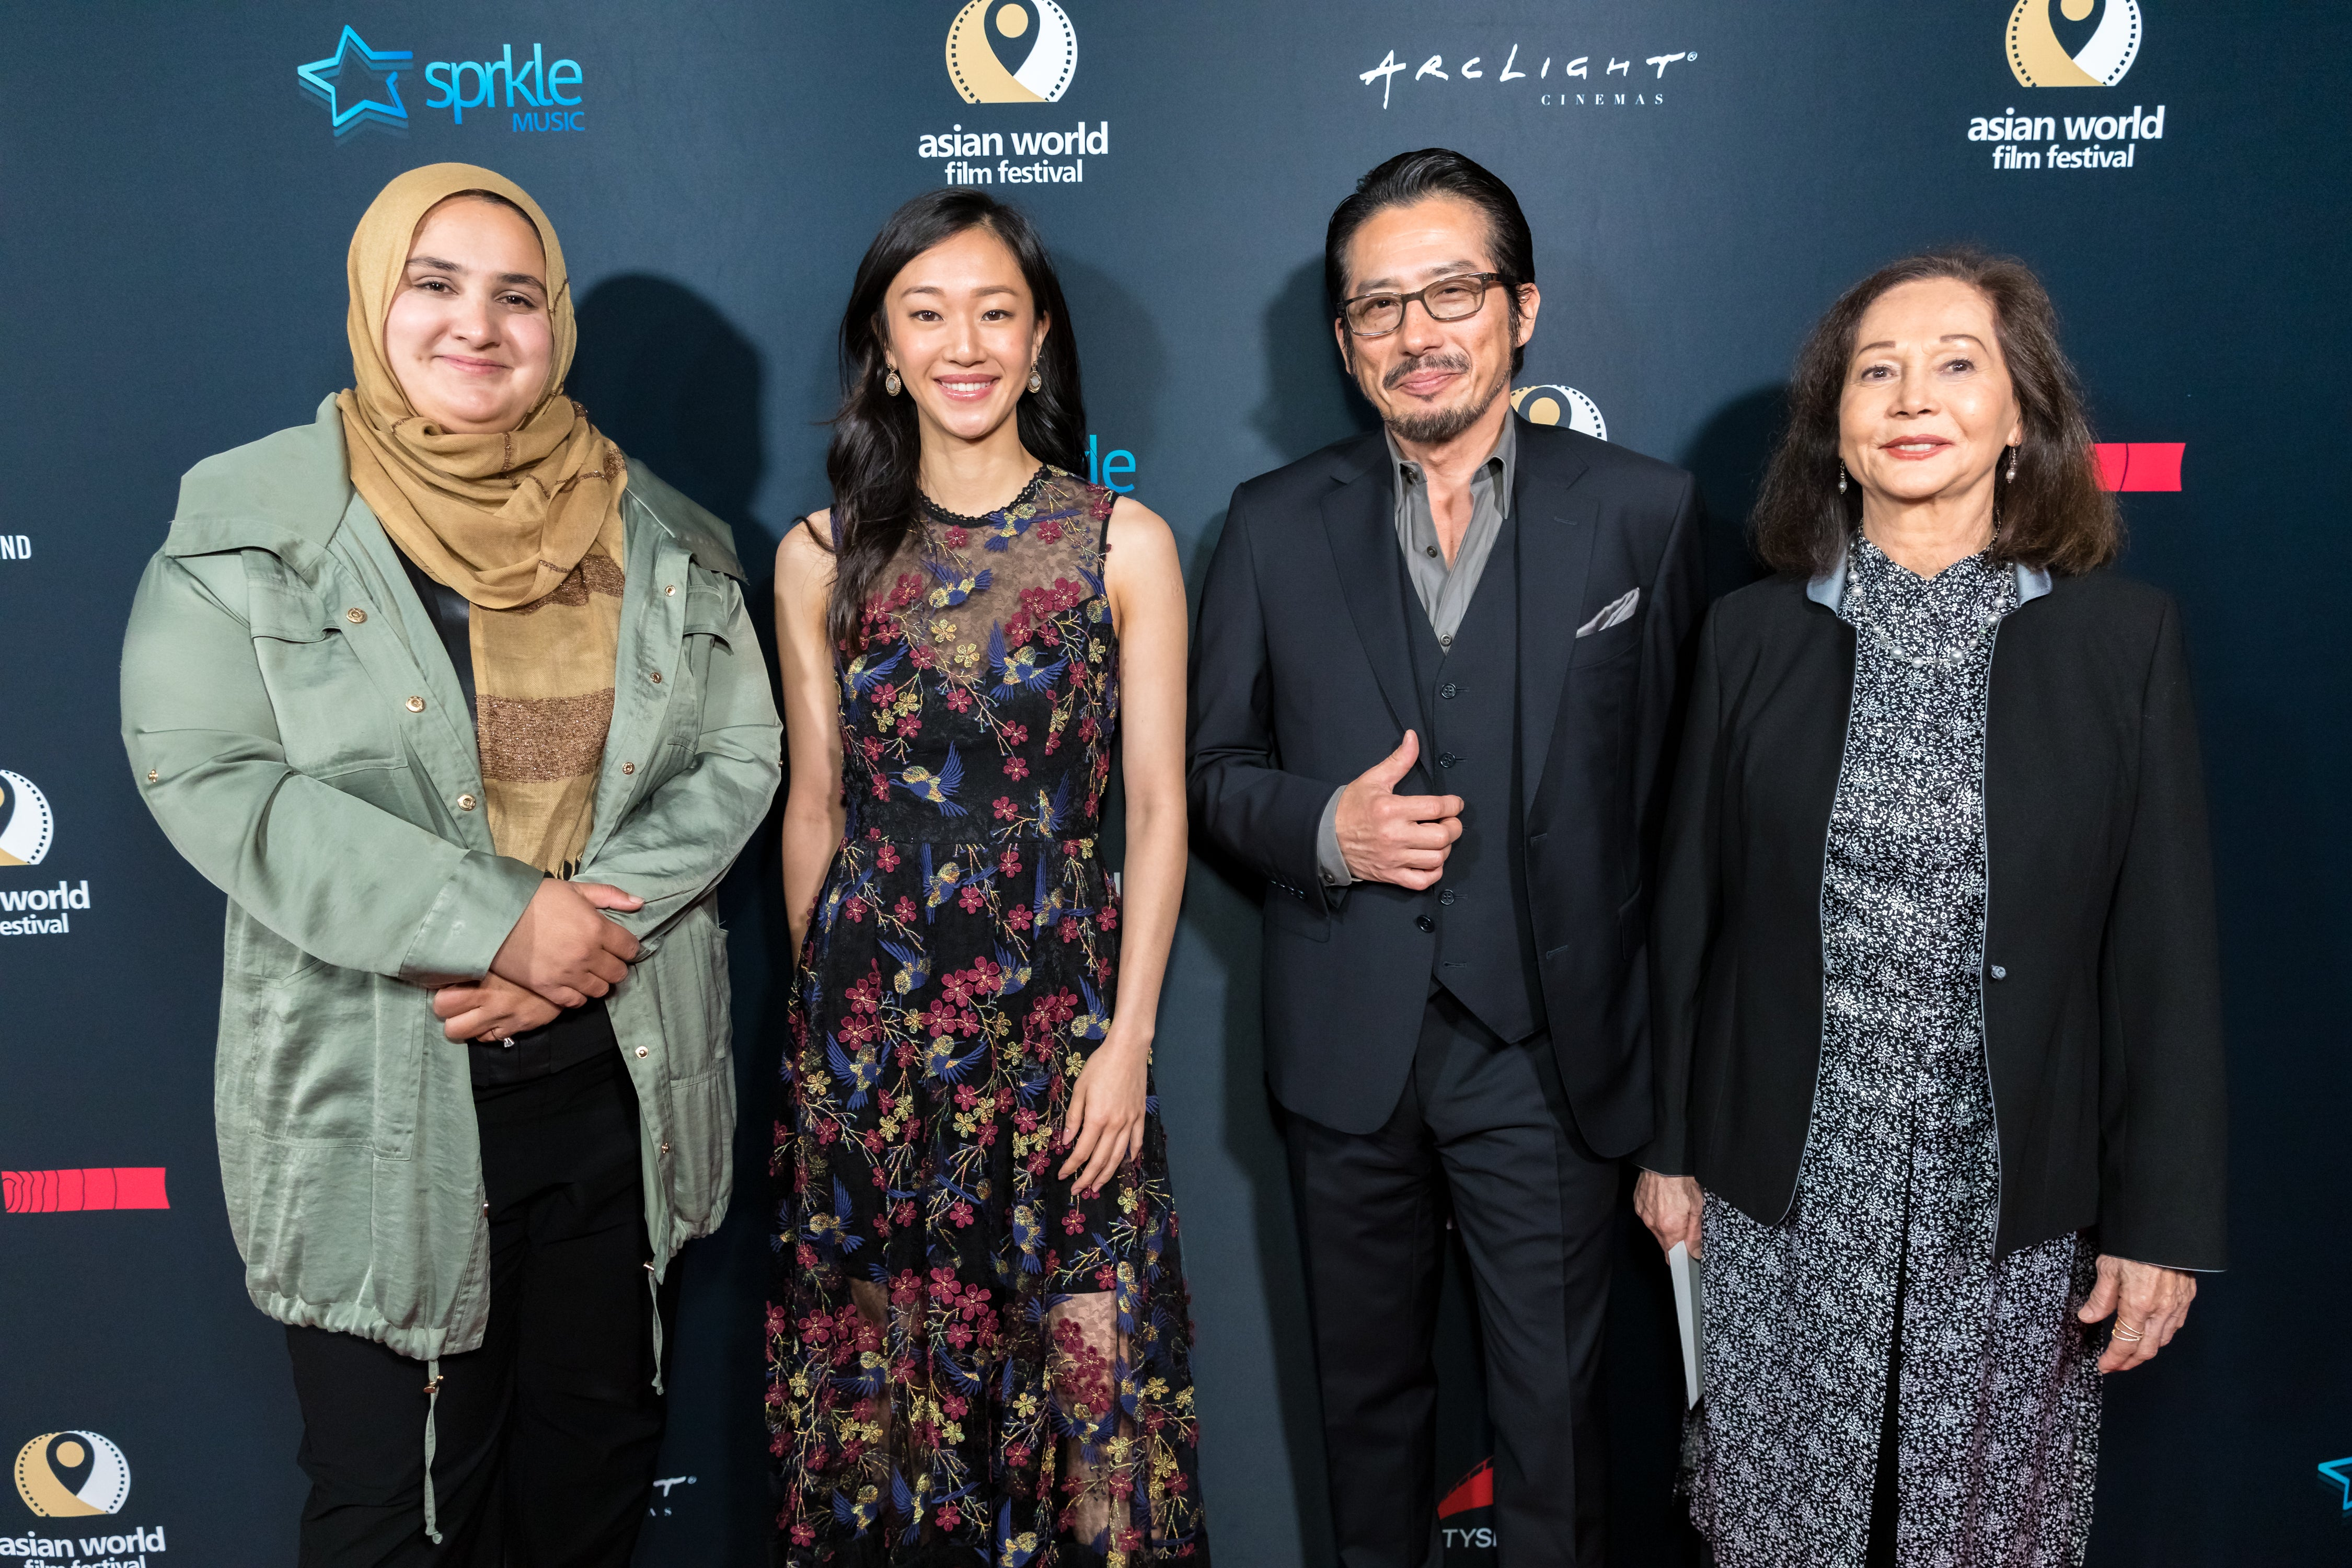 Asian World Film Festival honorees Lena Khan, Tiffany Chu, Hiroyuki Sanada and Nancy Kwan attend the Opening Night For the 5th Annual Asian World Film Festival on November 6, 2019 in Culver City, California